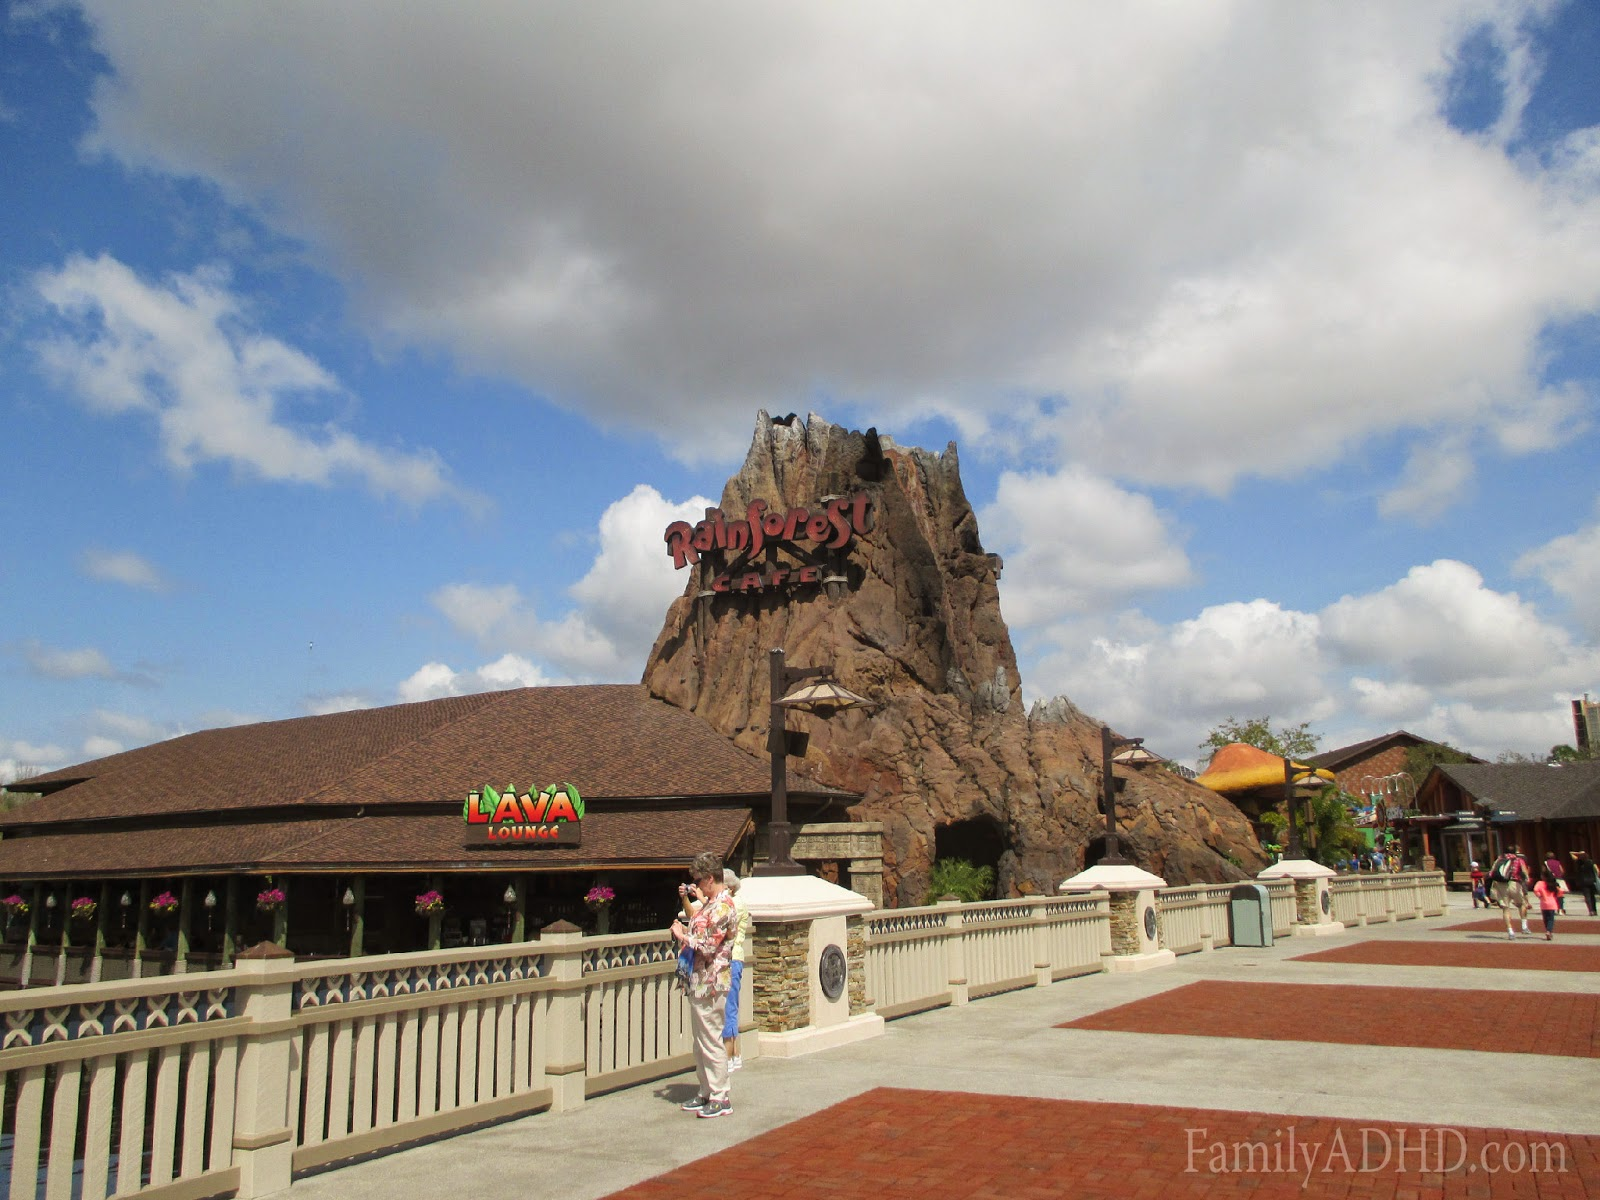 orlando family vacation downtown disney travel blog review